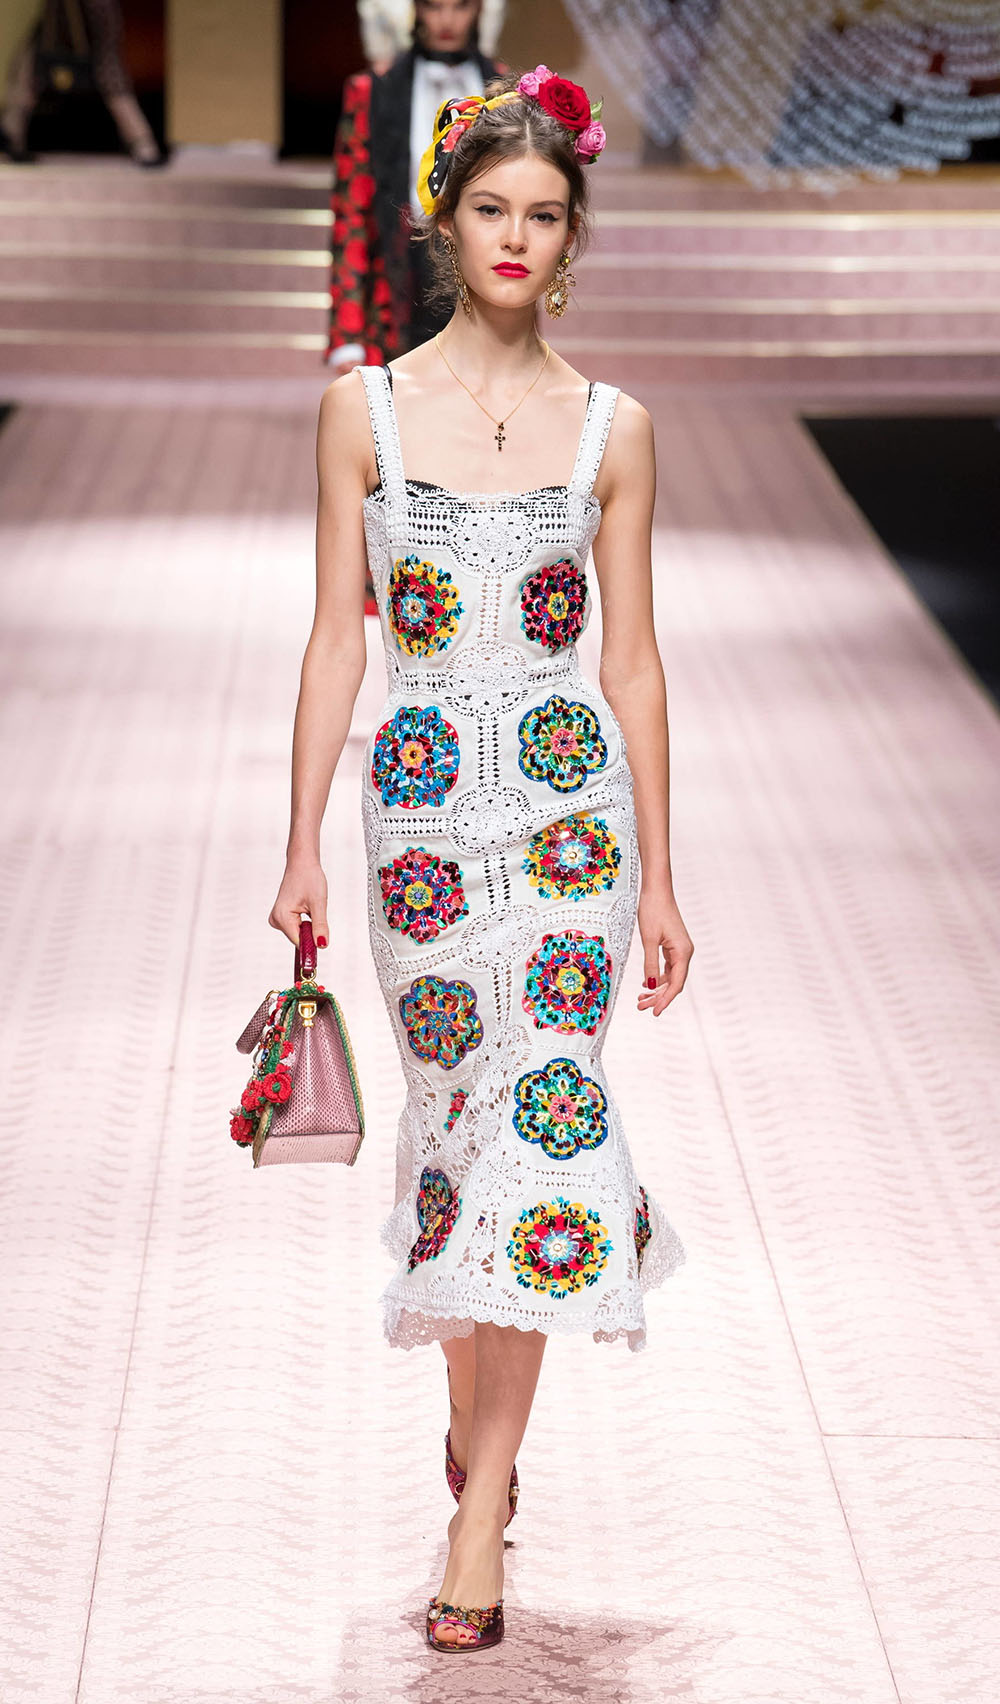 Best Dolce and Gabbana Spring 2019 Looks from the Runway at Milan Fashion Week #DolceGabbana #DGFamily #Milan #fashionweek #MFW